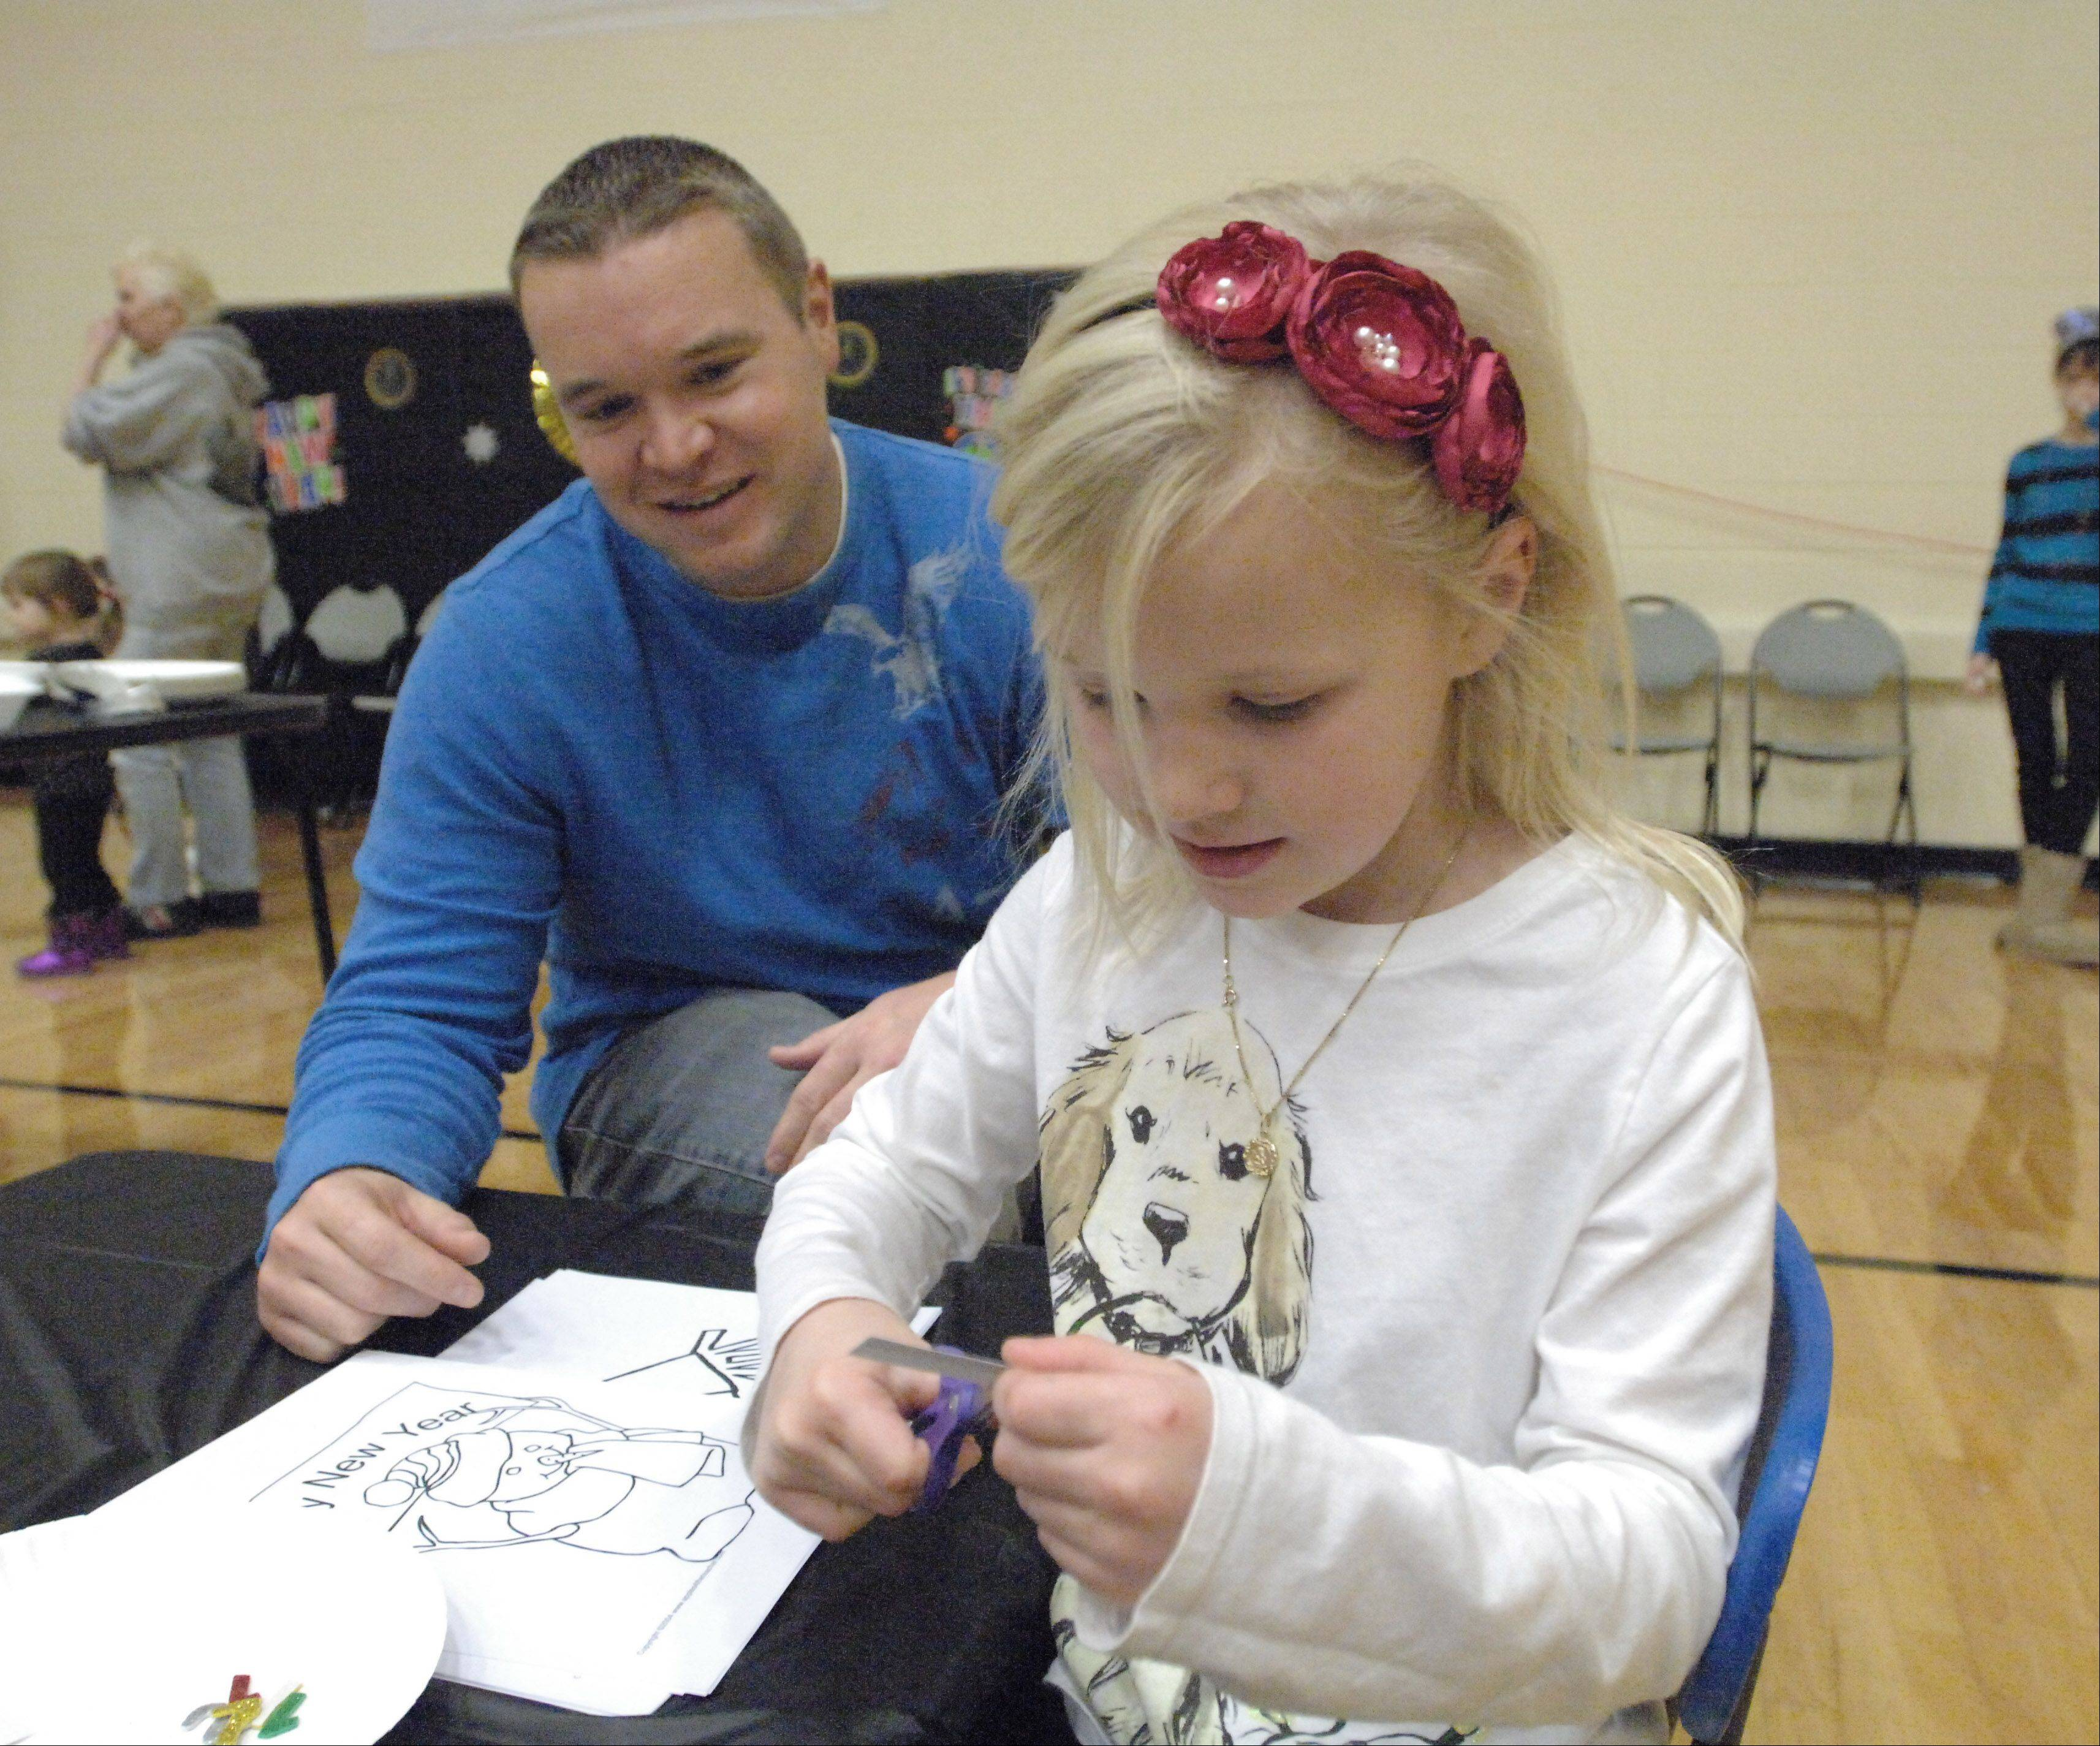 Brian Machesky of Crystal Lake and his five-year-old daughter, Abby, make a clock craft Saturday during the Carol Stream Park District's Teenie Weenie New Year's Eve Ball.